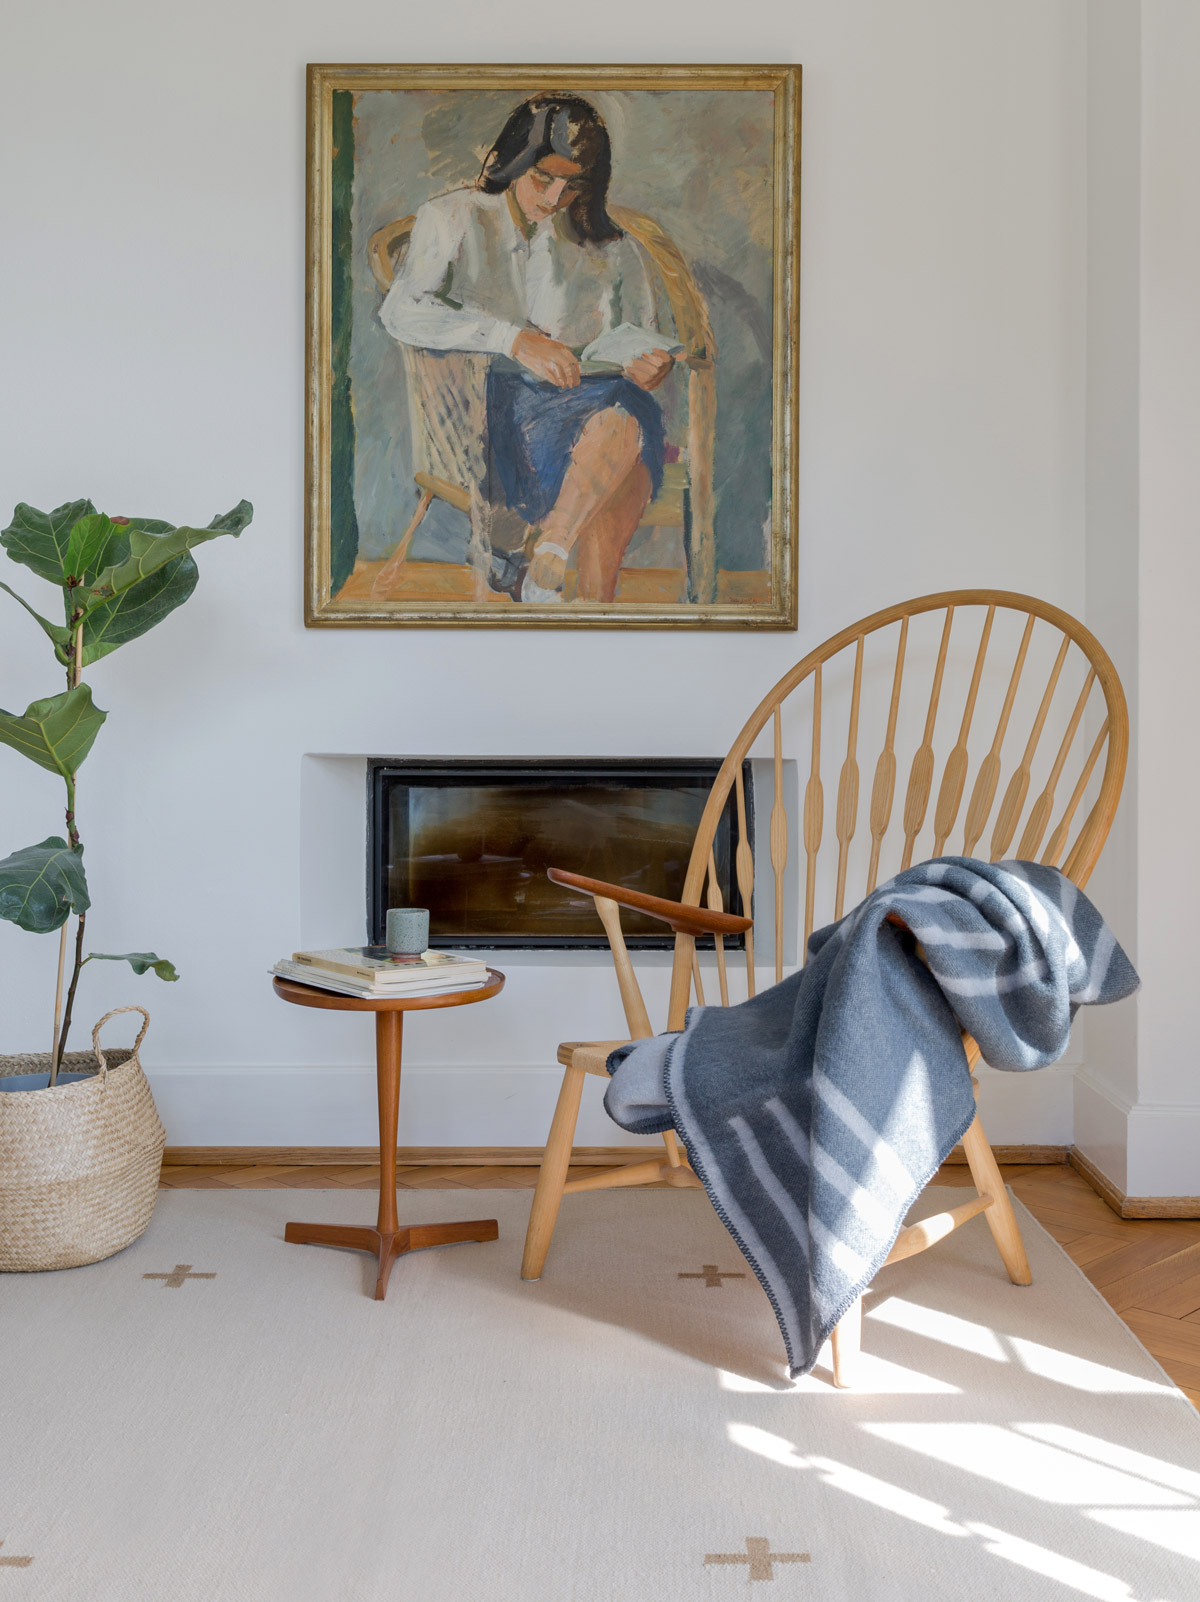 Wool blanket Classic in Steel Blue hung over a wooden armchair in a cosy living room setting.